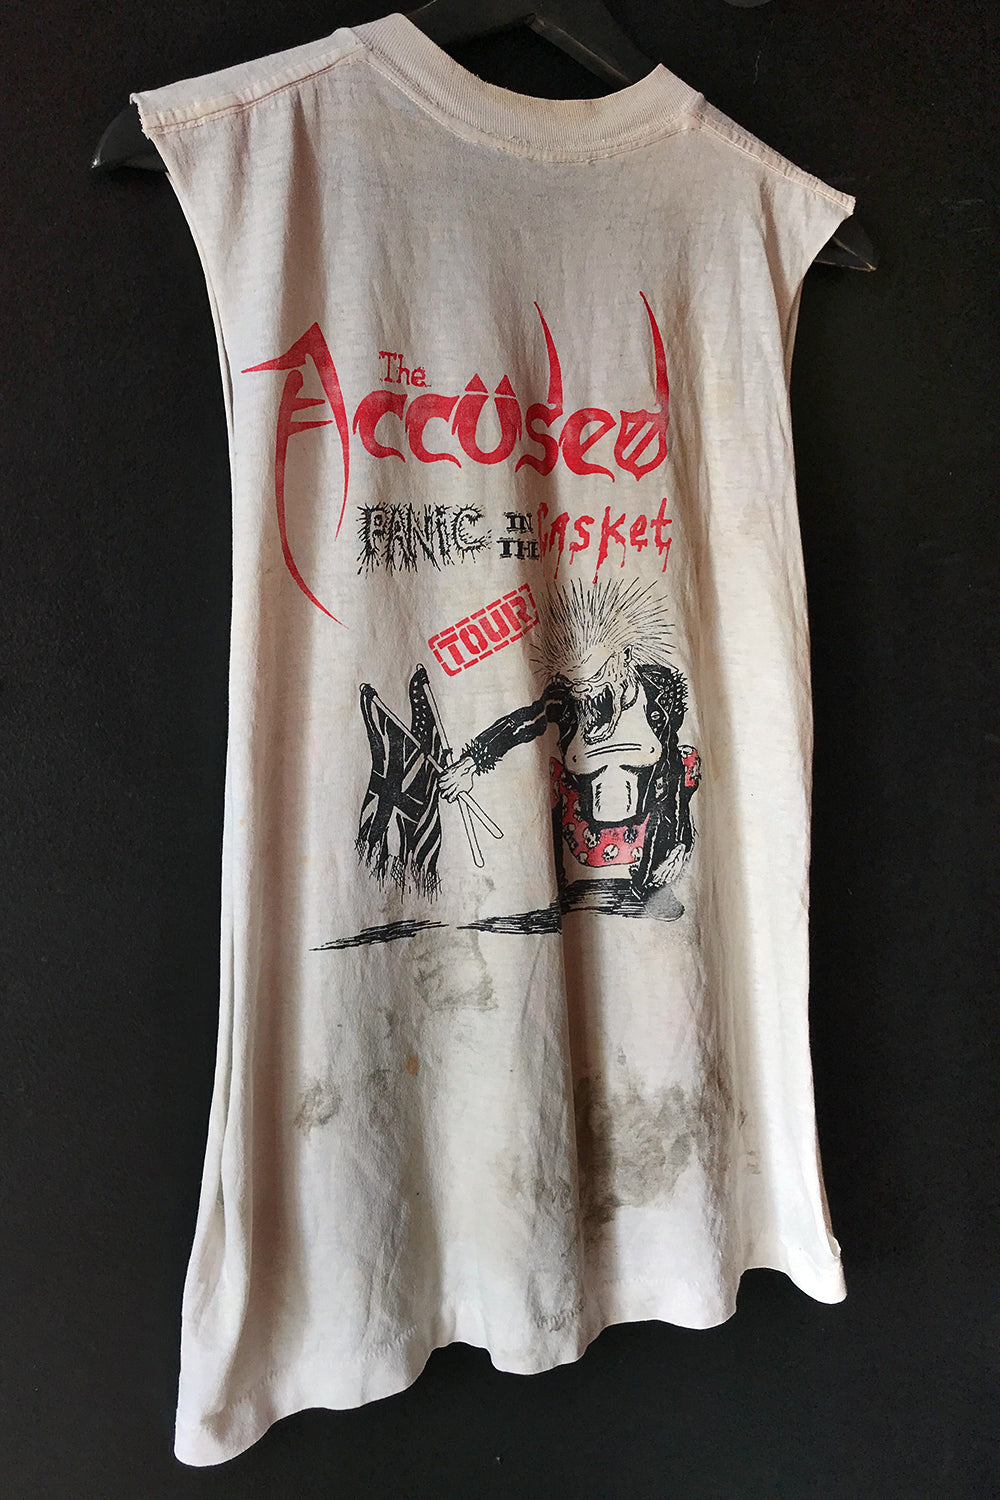 RARE 1987 The Accused Panic In The Casket Tour Tee